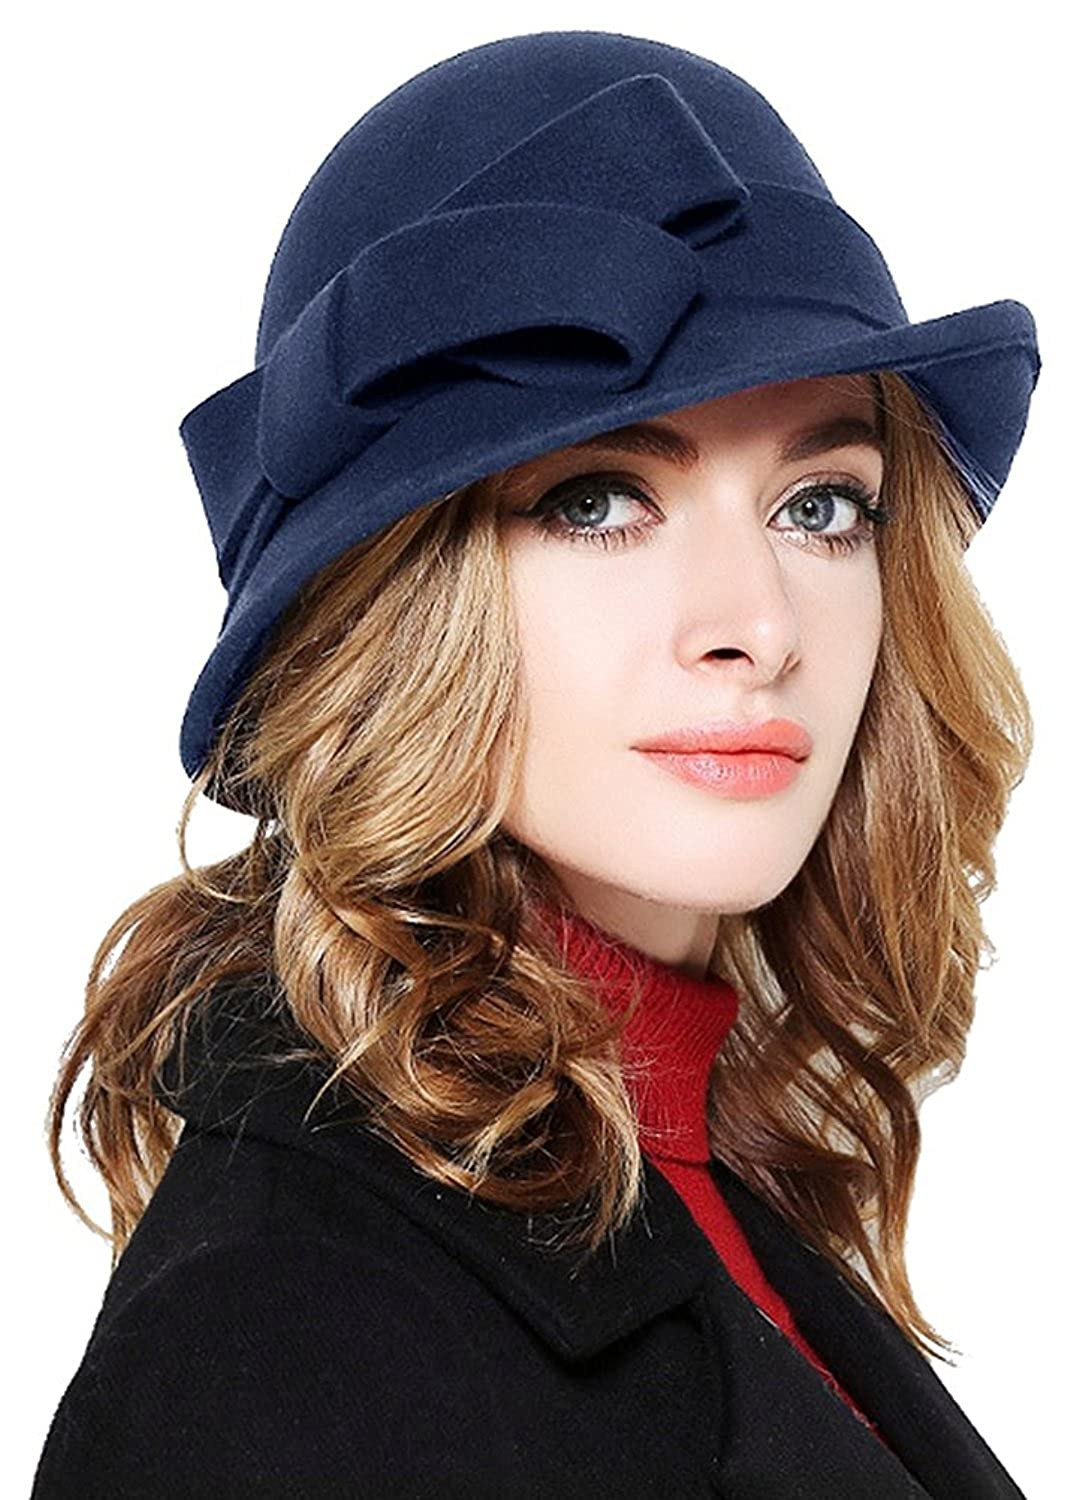 1930s Style Hats | 30s Ladies Hats Bellady Women Solid Color Winter Hat 100% Wool Cloche Bucket With Bow Accent $21.99 AT vintagedancer.com